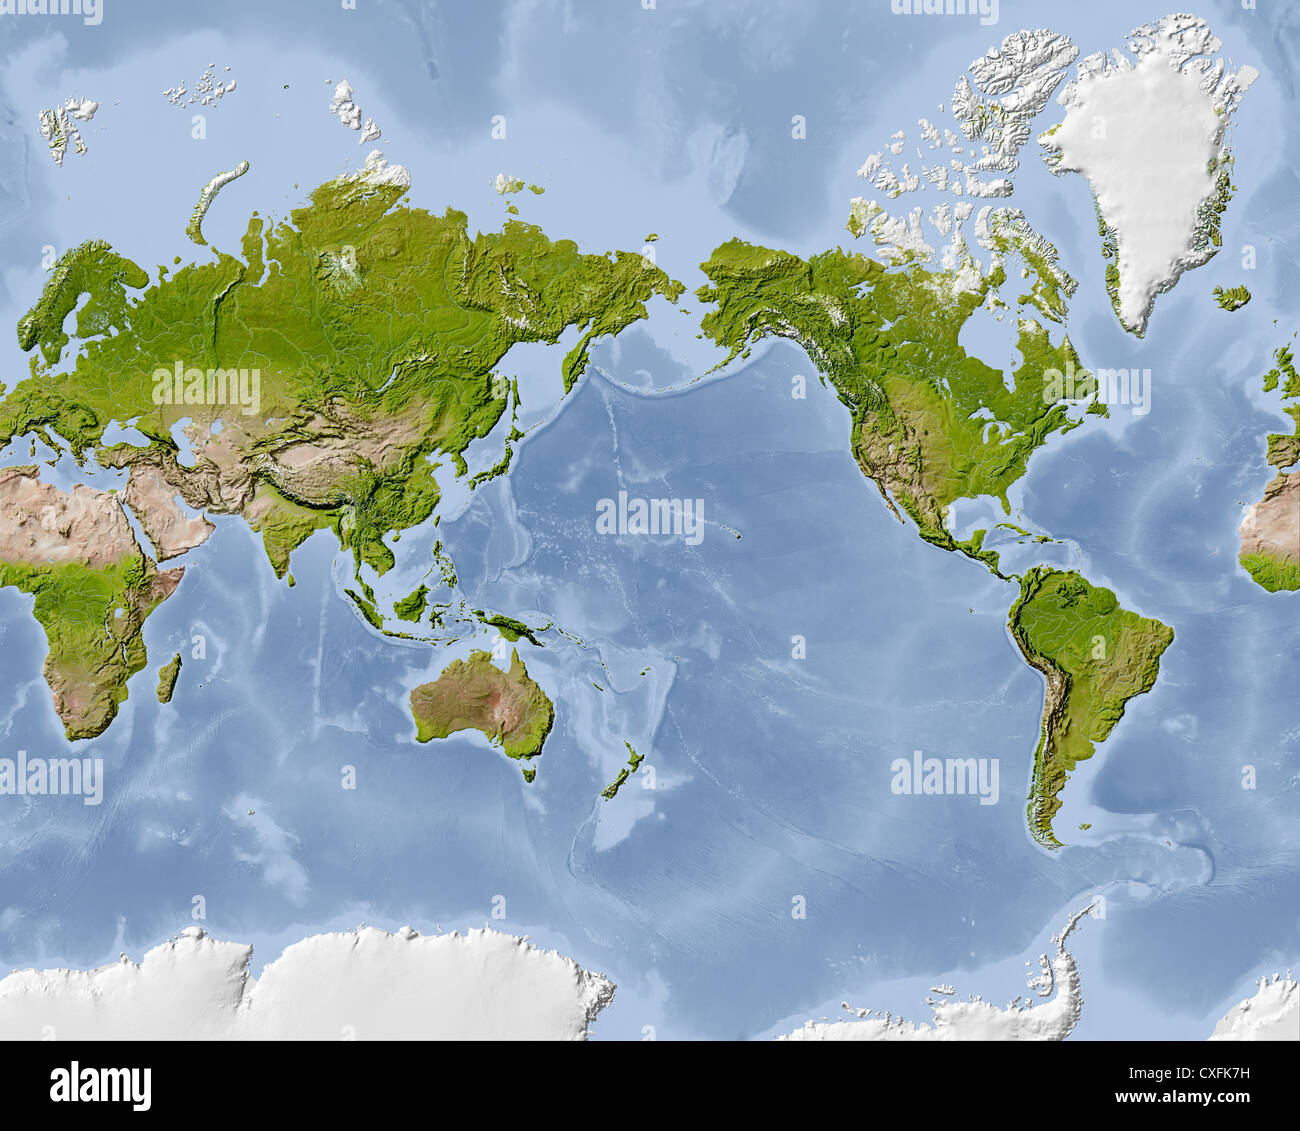 Topographic Map And World Stock Photos Topographic Map And World - Topographic map of the world